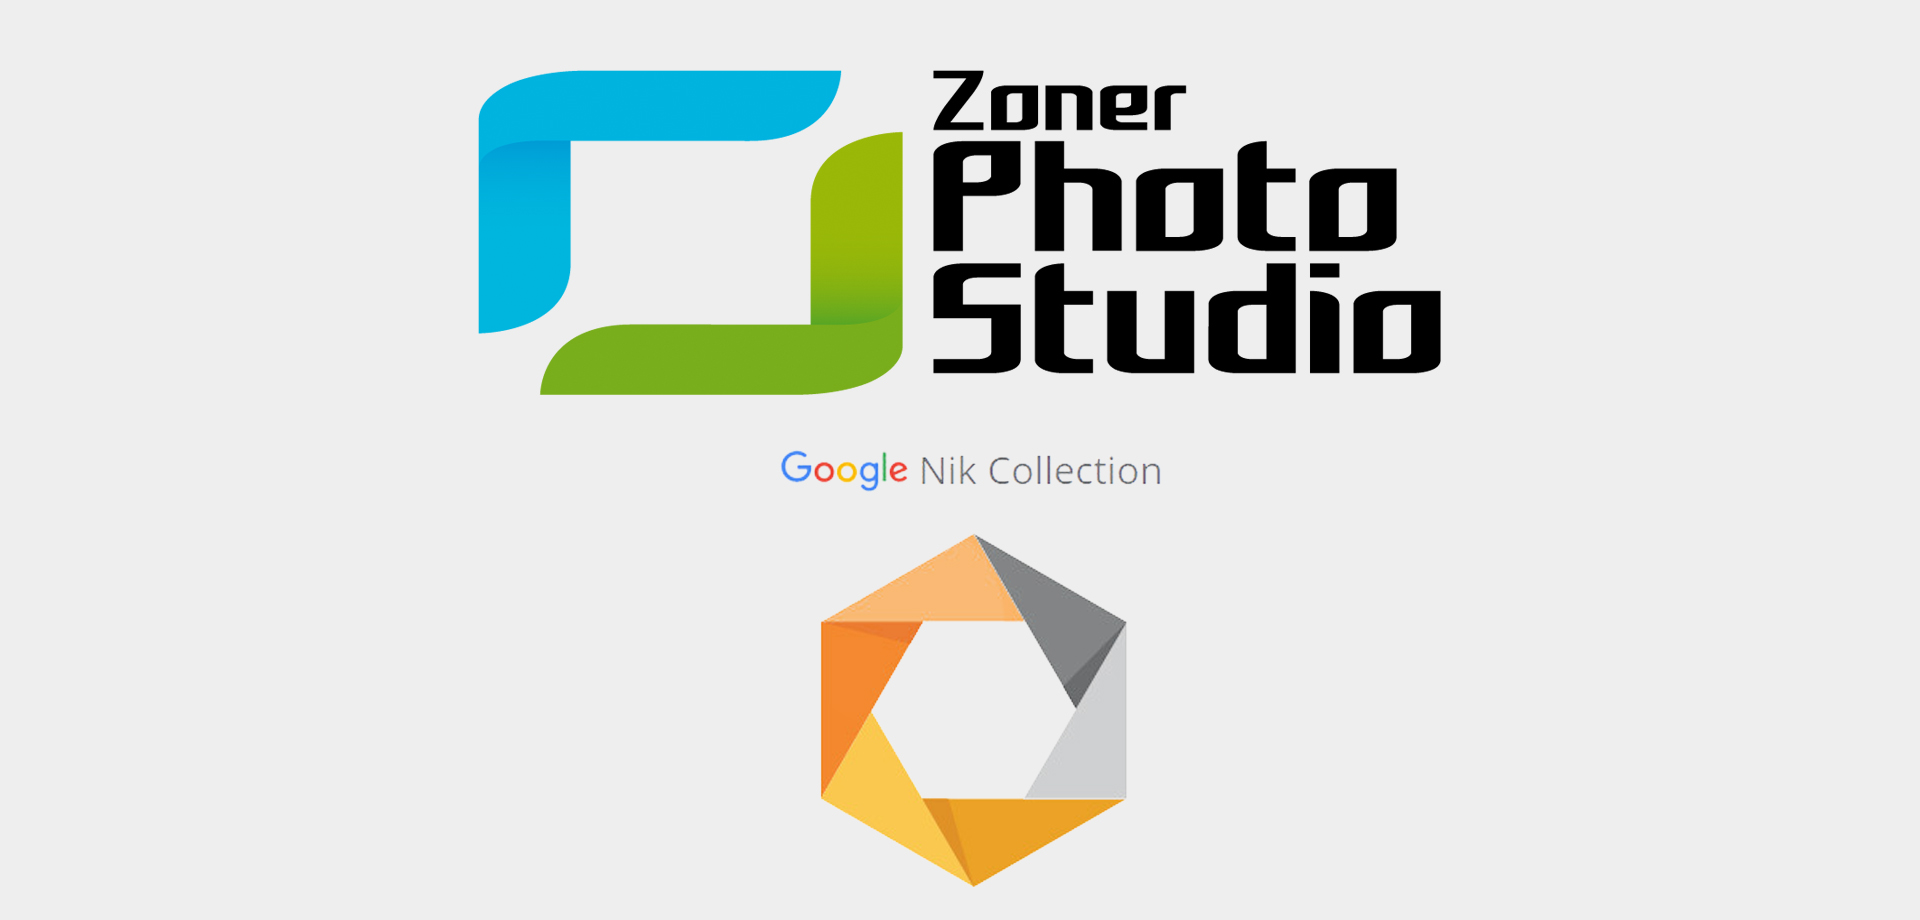 ZONER PHOTO STUDIO A NIK COLLECTION